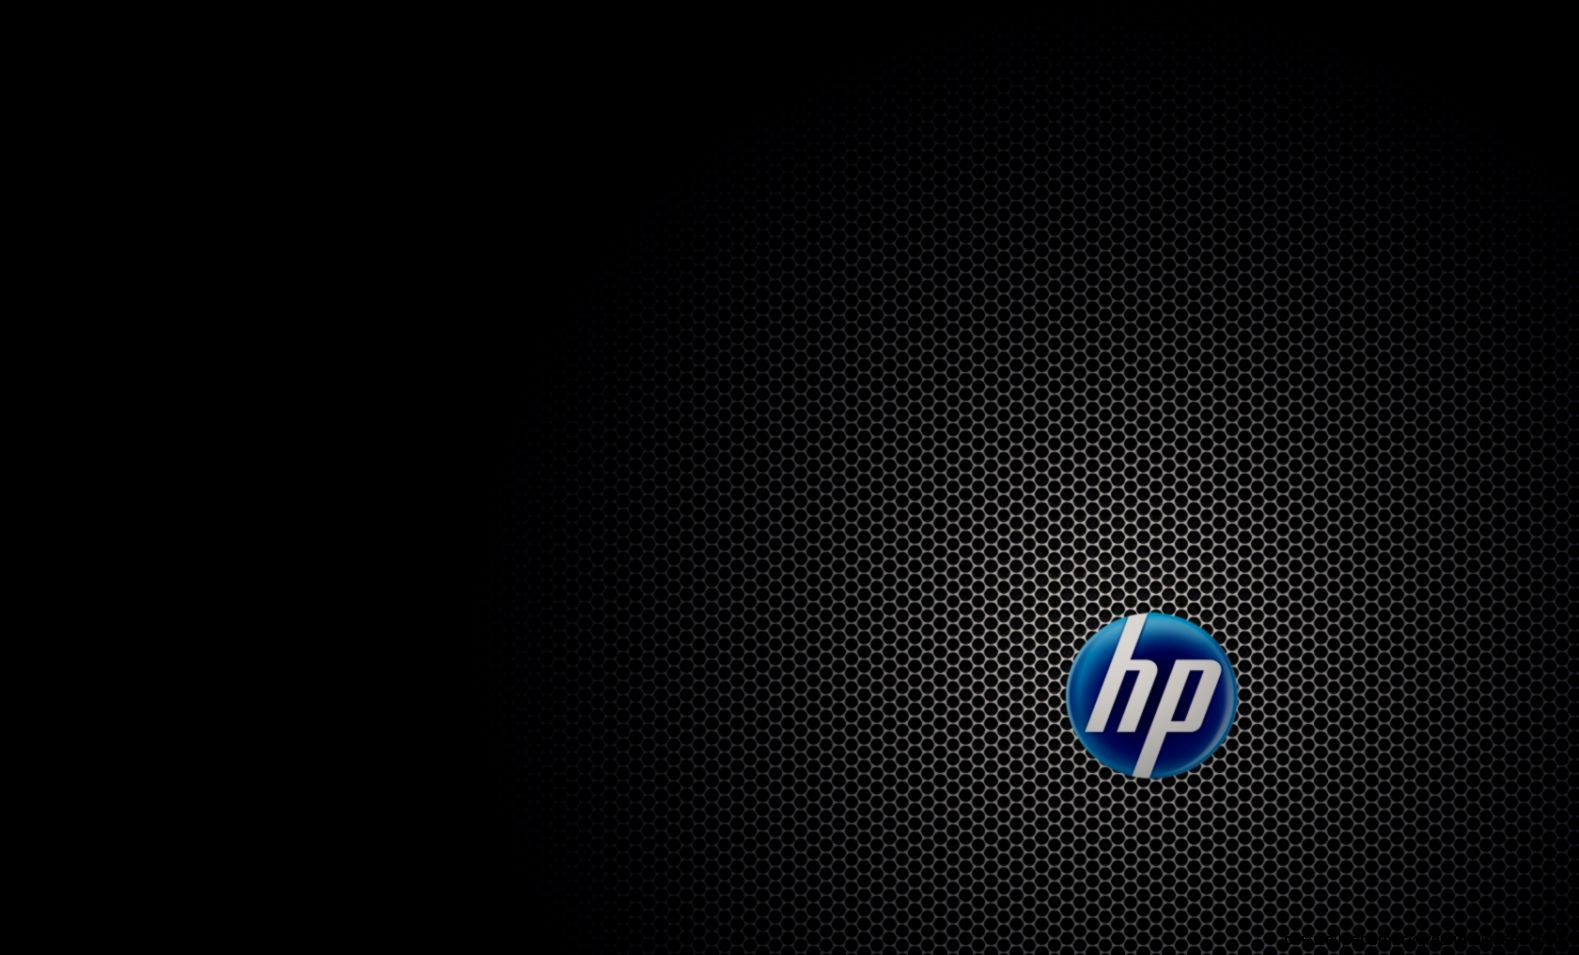 Hp Wallpaper Hd Background Is Wallpapers 1920x1080PX  Hp Hd